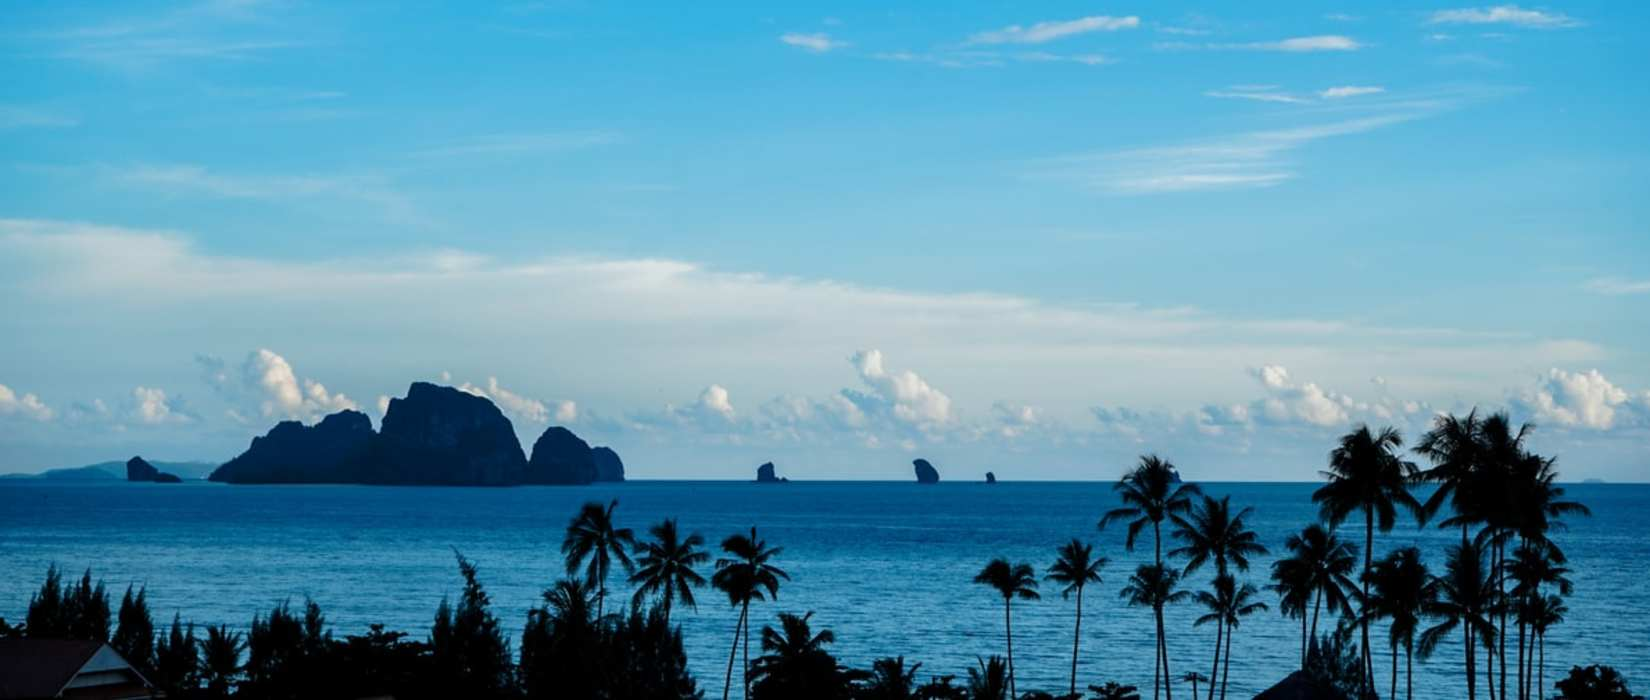 One of Thailand's most popular tourist destinations, Krabi, is a vibrant land that is brimming with diverse cultures and a myriad of contrasts. Vacationers who are looking to experience on-earth paradise can dip their toes on the palm-infringed coast on one side, while thrill-seekers can expect a unique experience in the lush rainforests on the other.